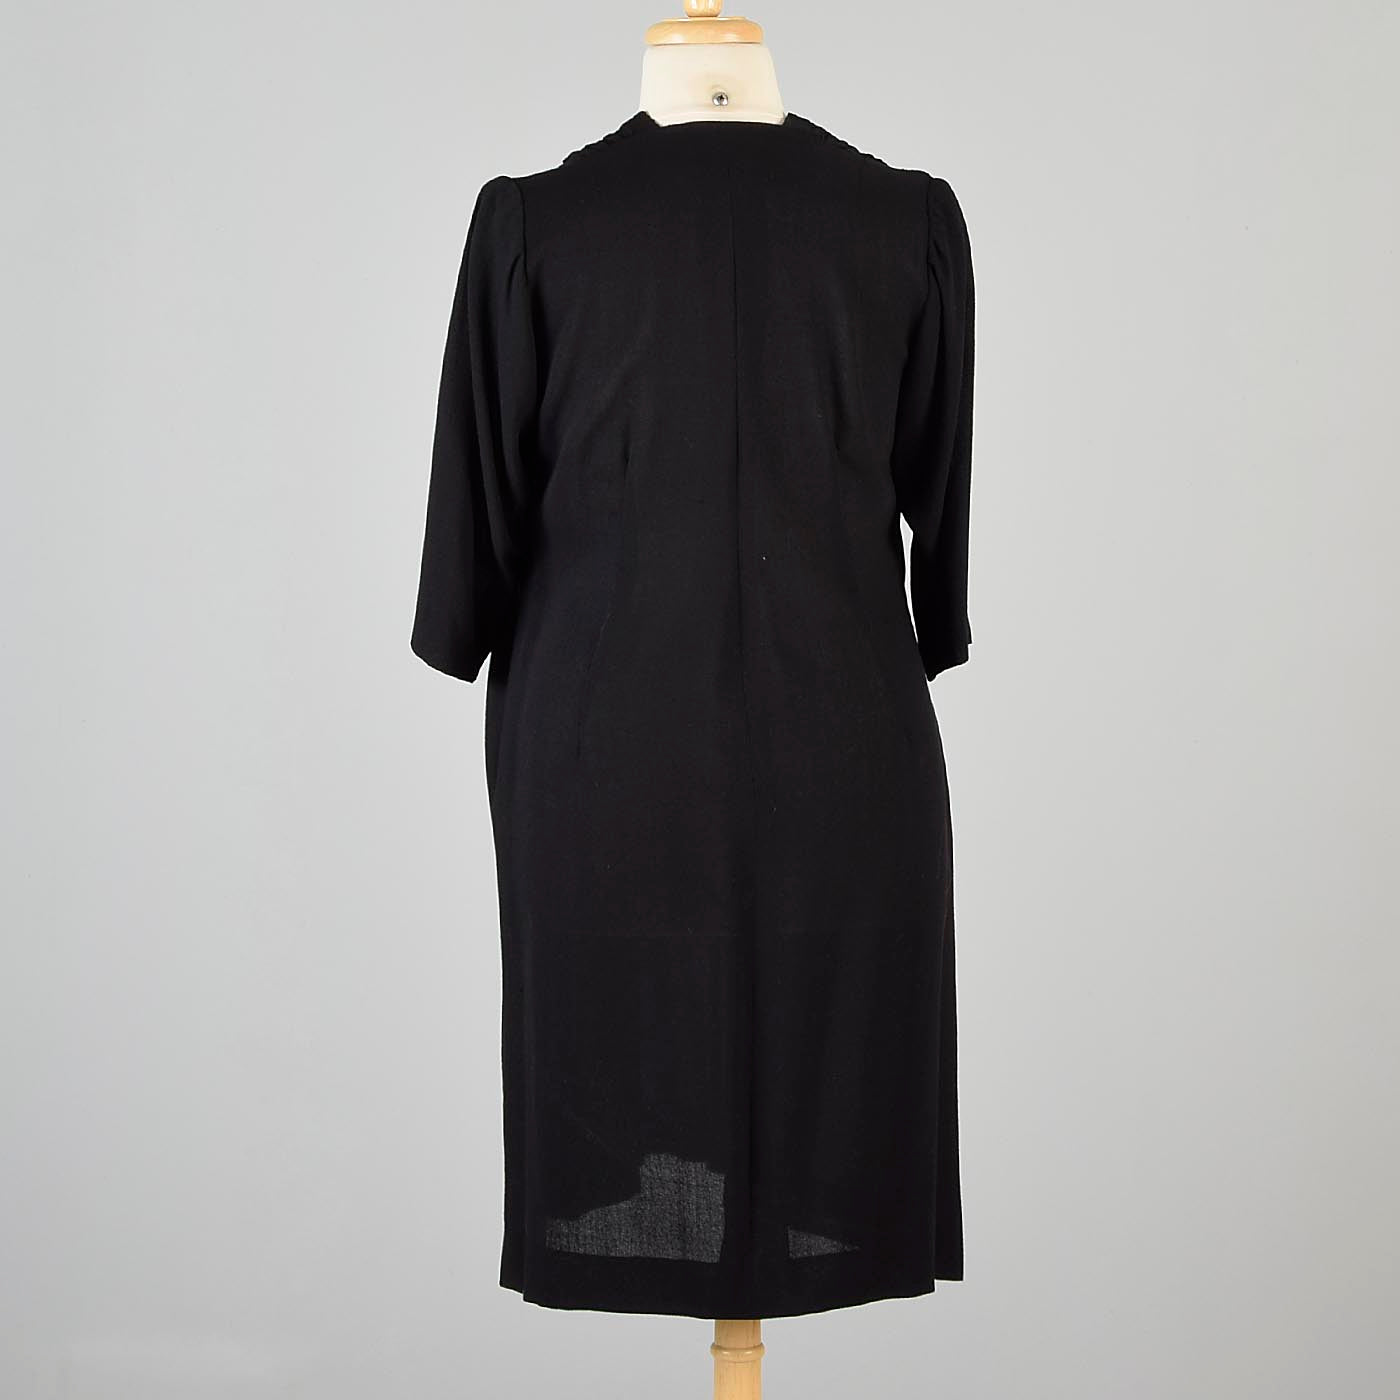 1940s Black Crepe Dress with Beaded Bust